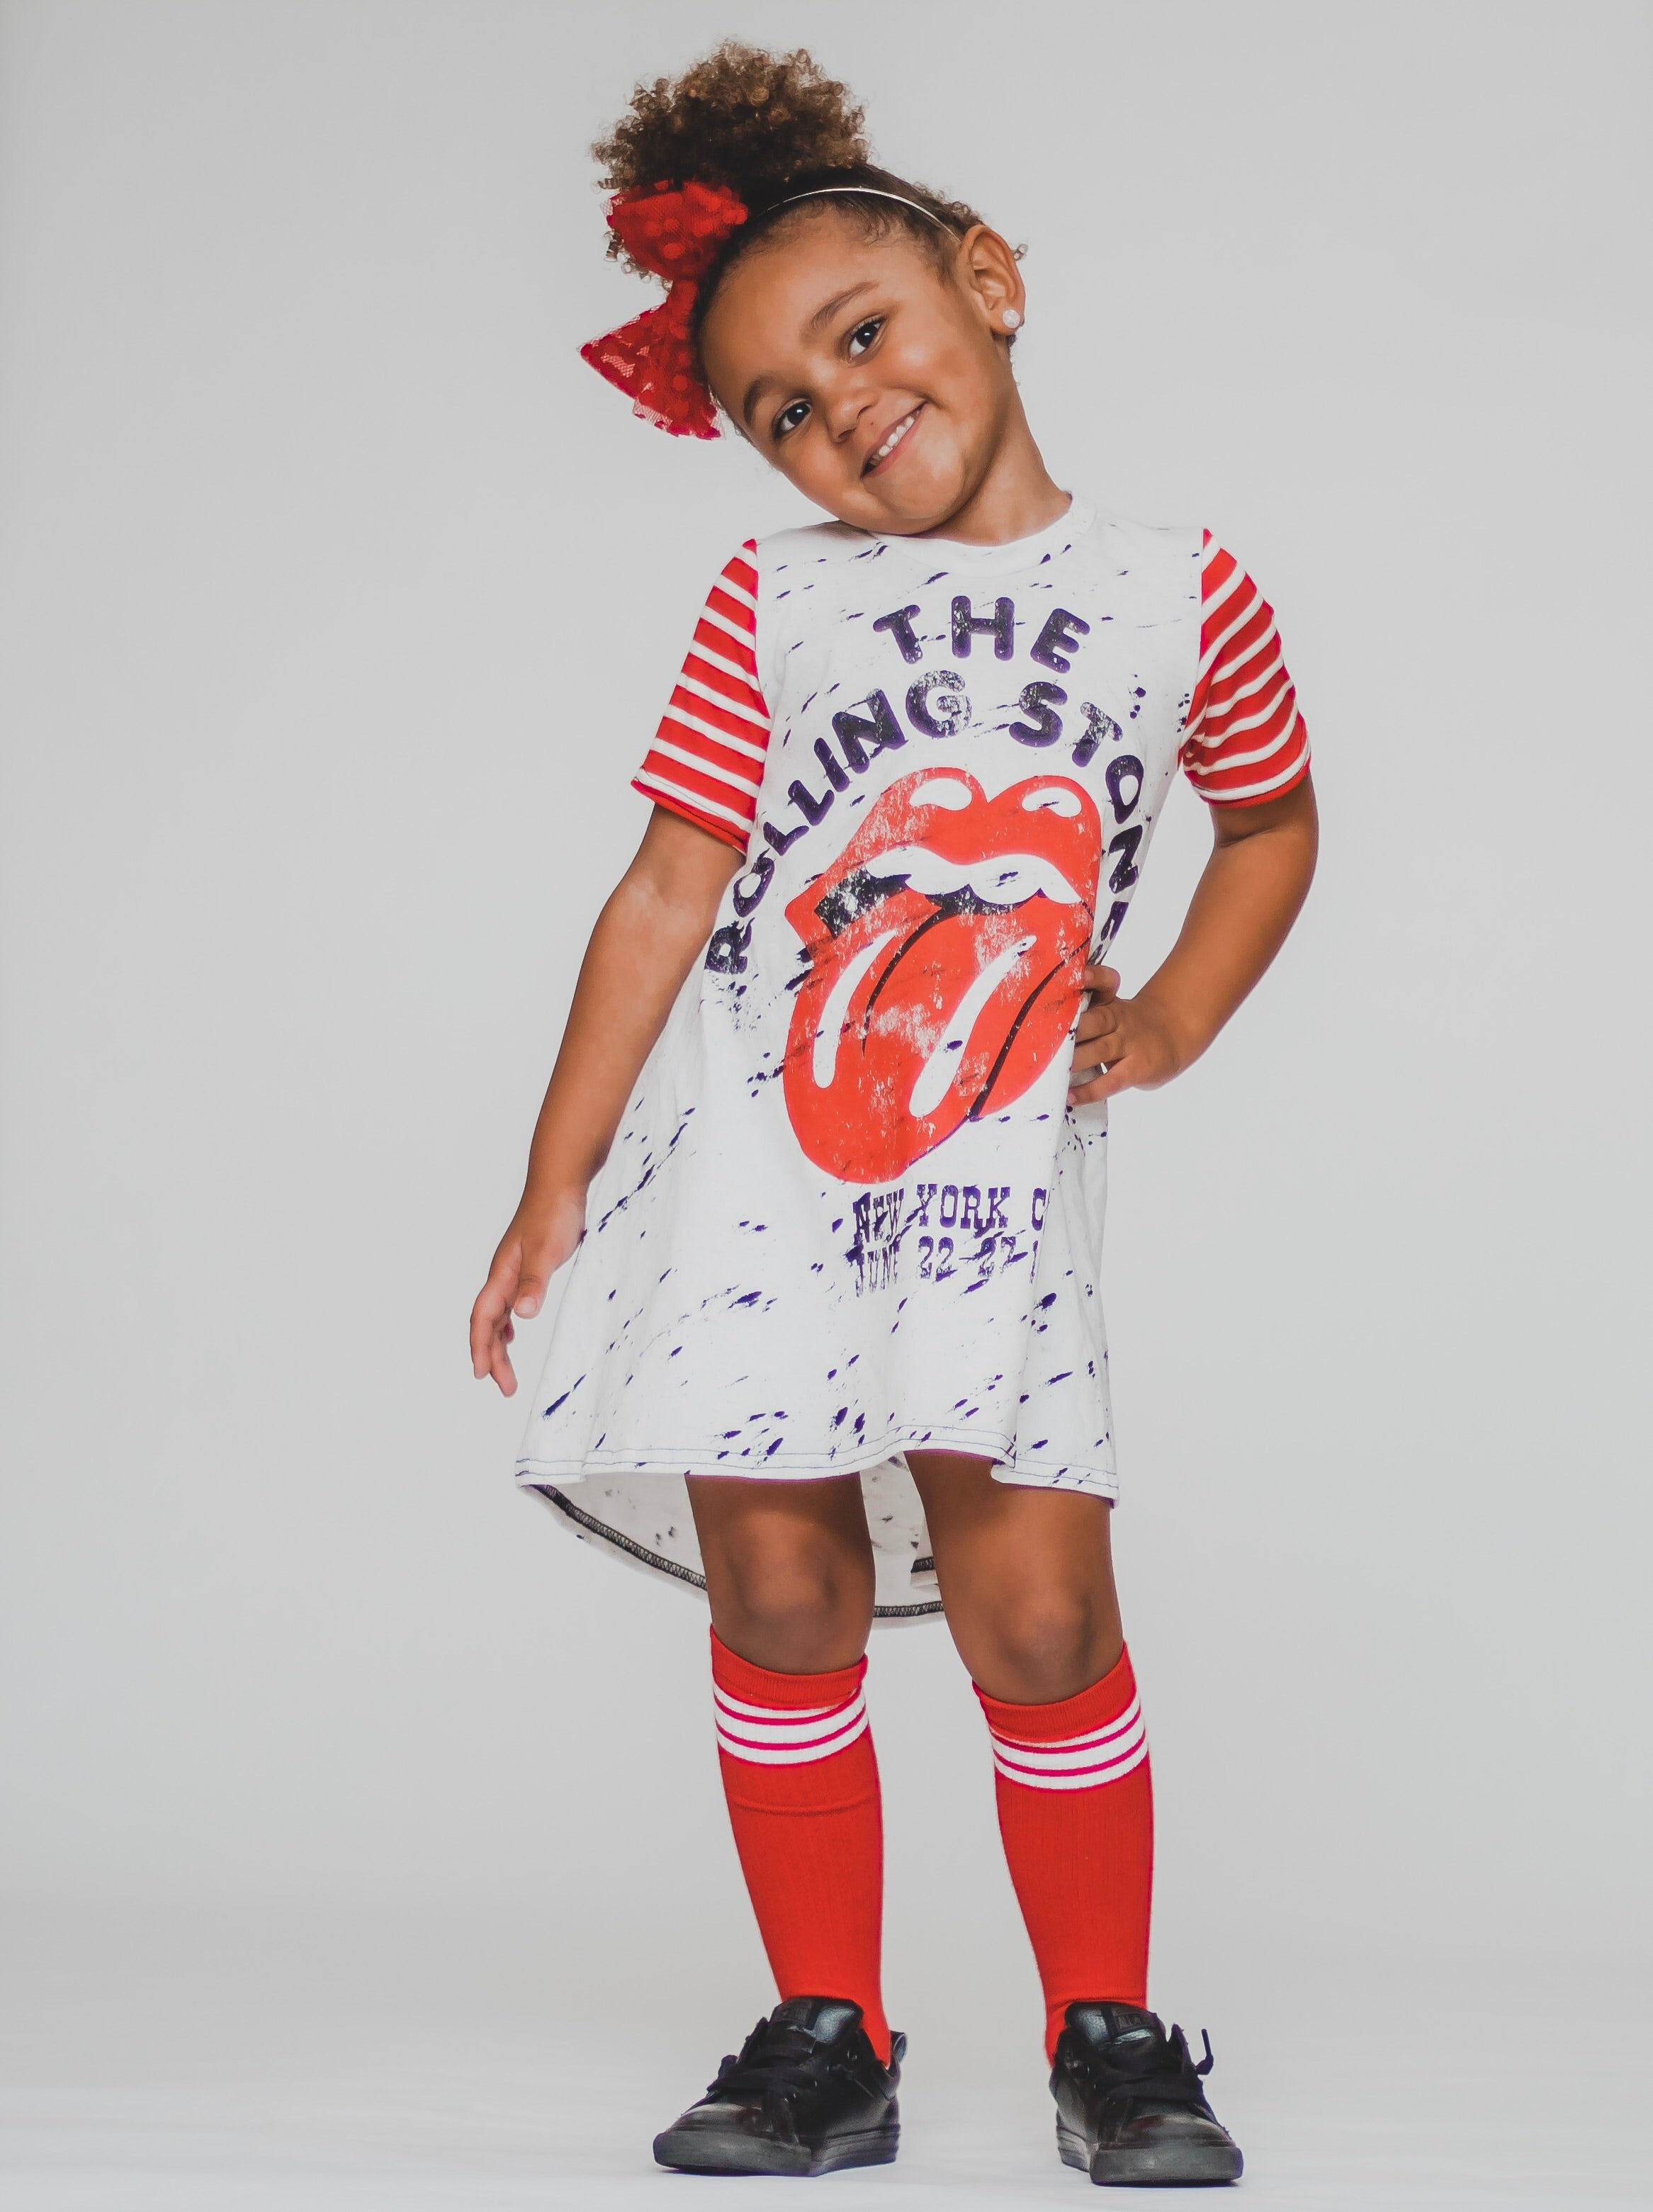 The Rolling Stones Romper/Dress/Hoodie, modeled on little girl